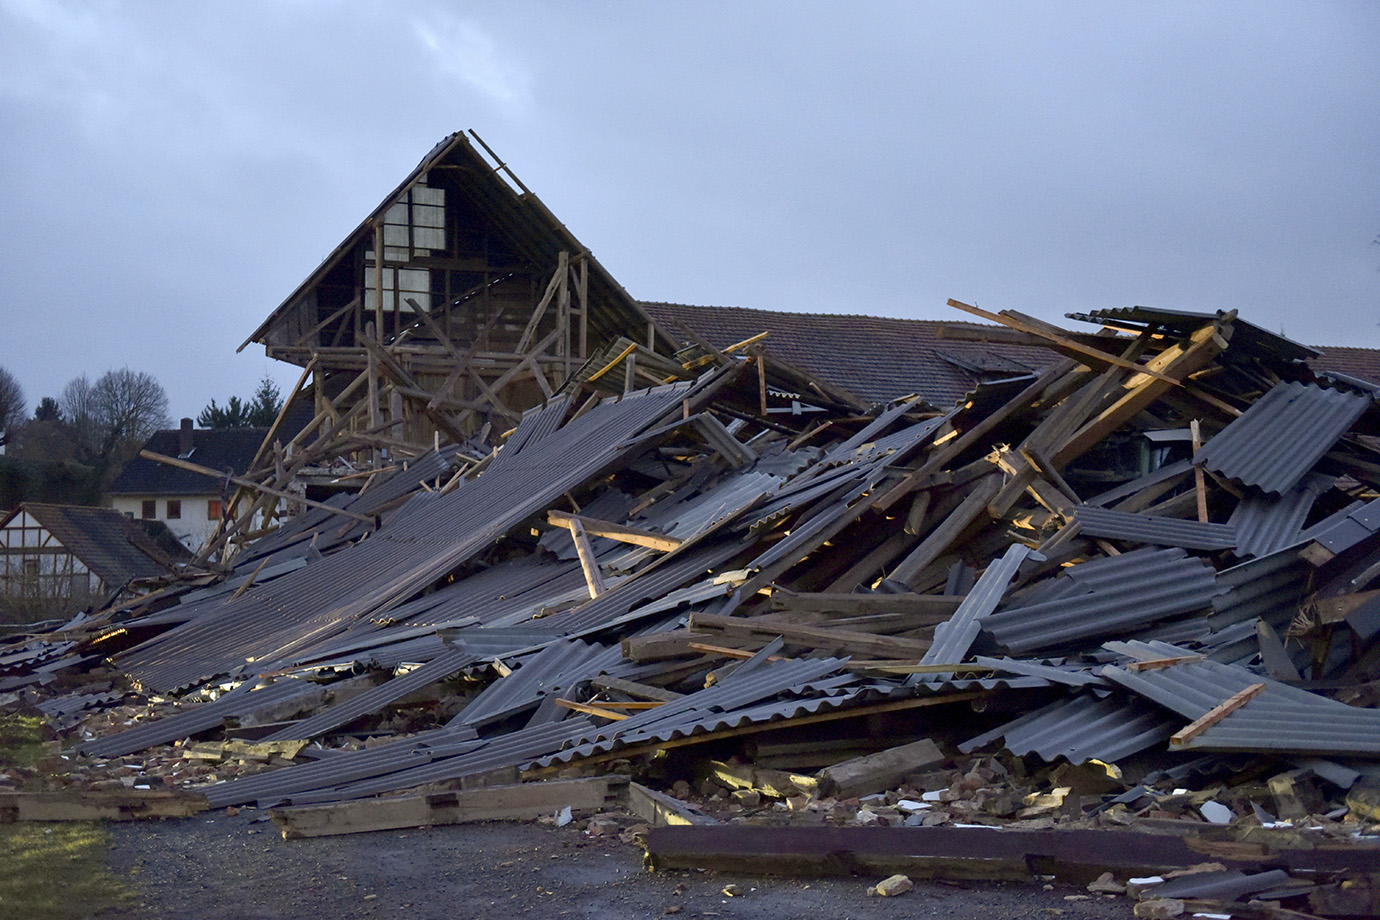 An agricultural building that collapsed during a heavy storm in Meimbressen, central Germany, Thursd